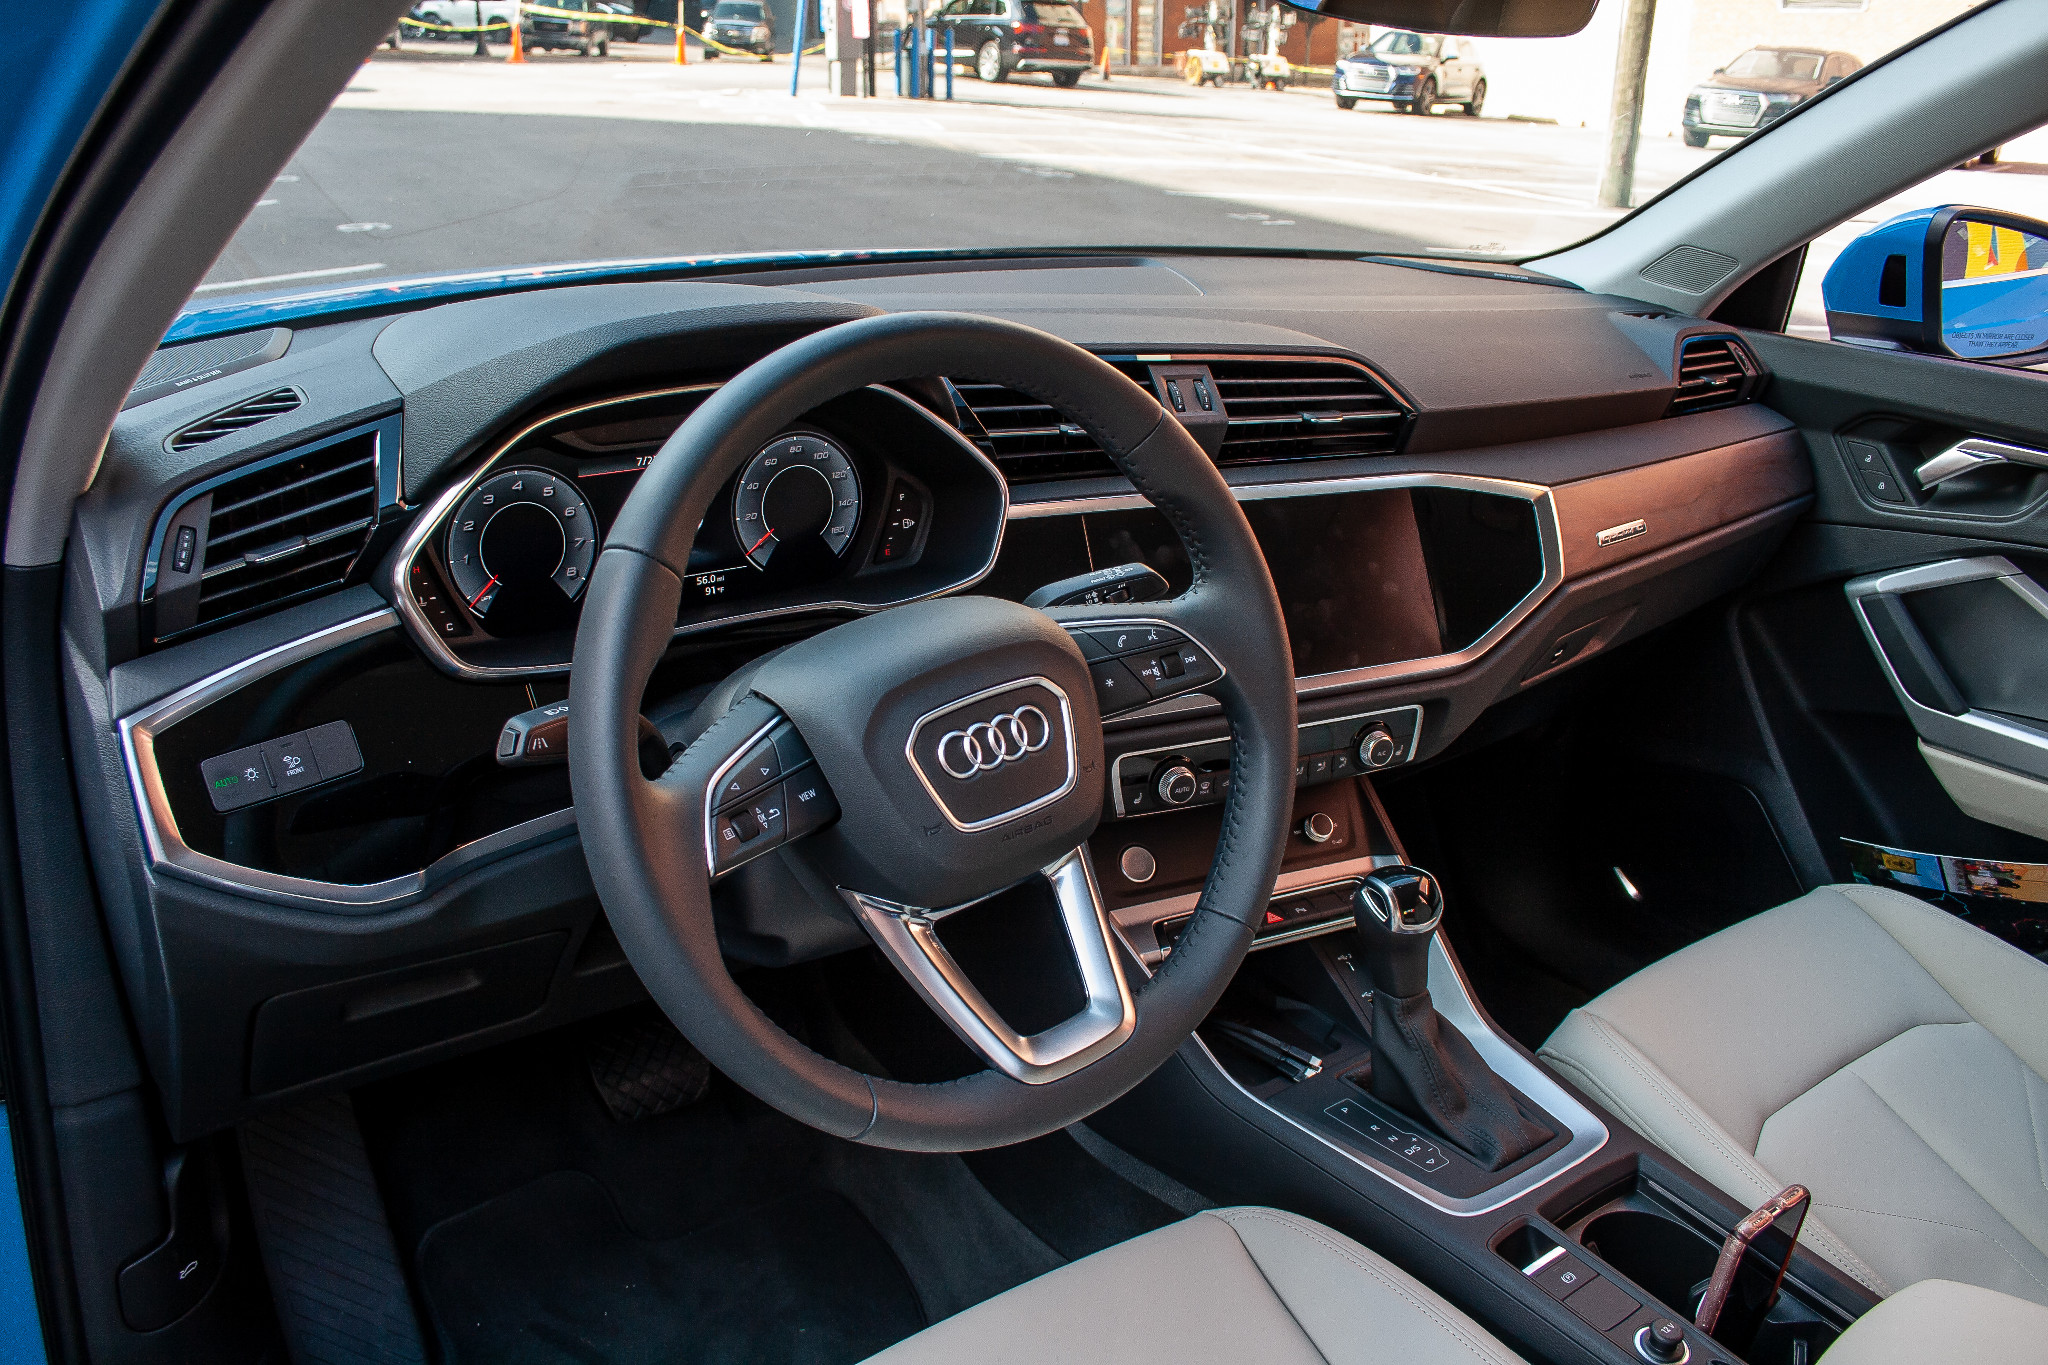 audi-q3-2019-11-front-row--interior--steering-wheel.jpg